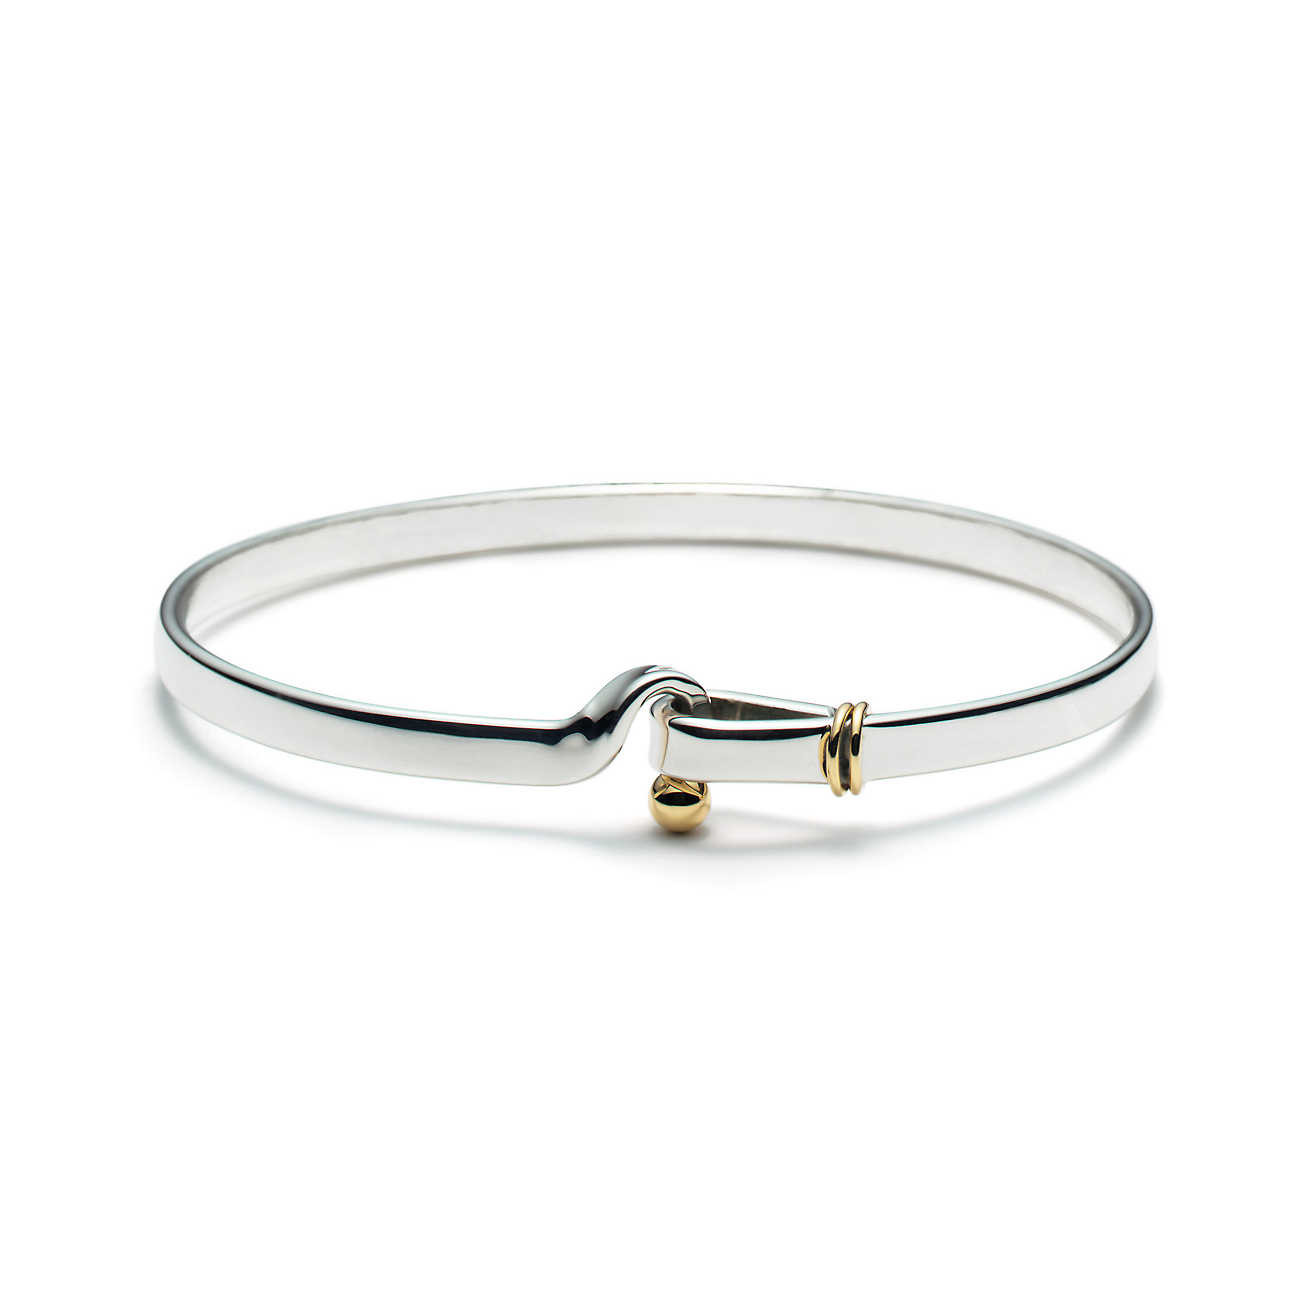 ed3cd0923 Tiffany Style Sterling Silver Hook & Eye Bangle with 14K Gold Detail